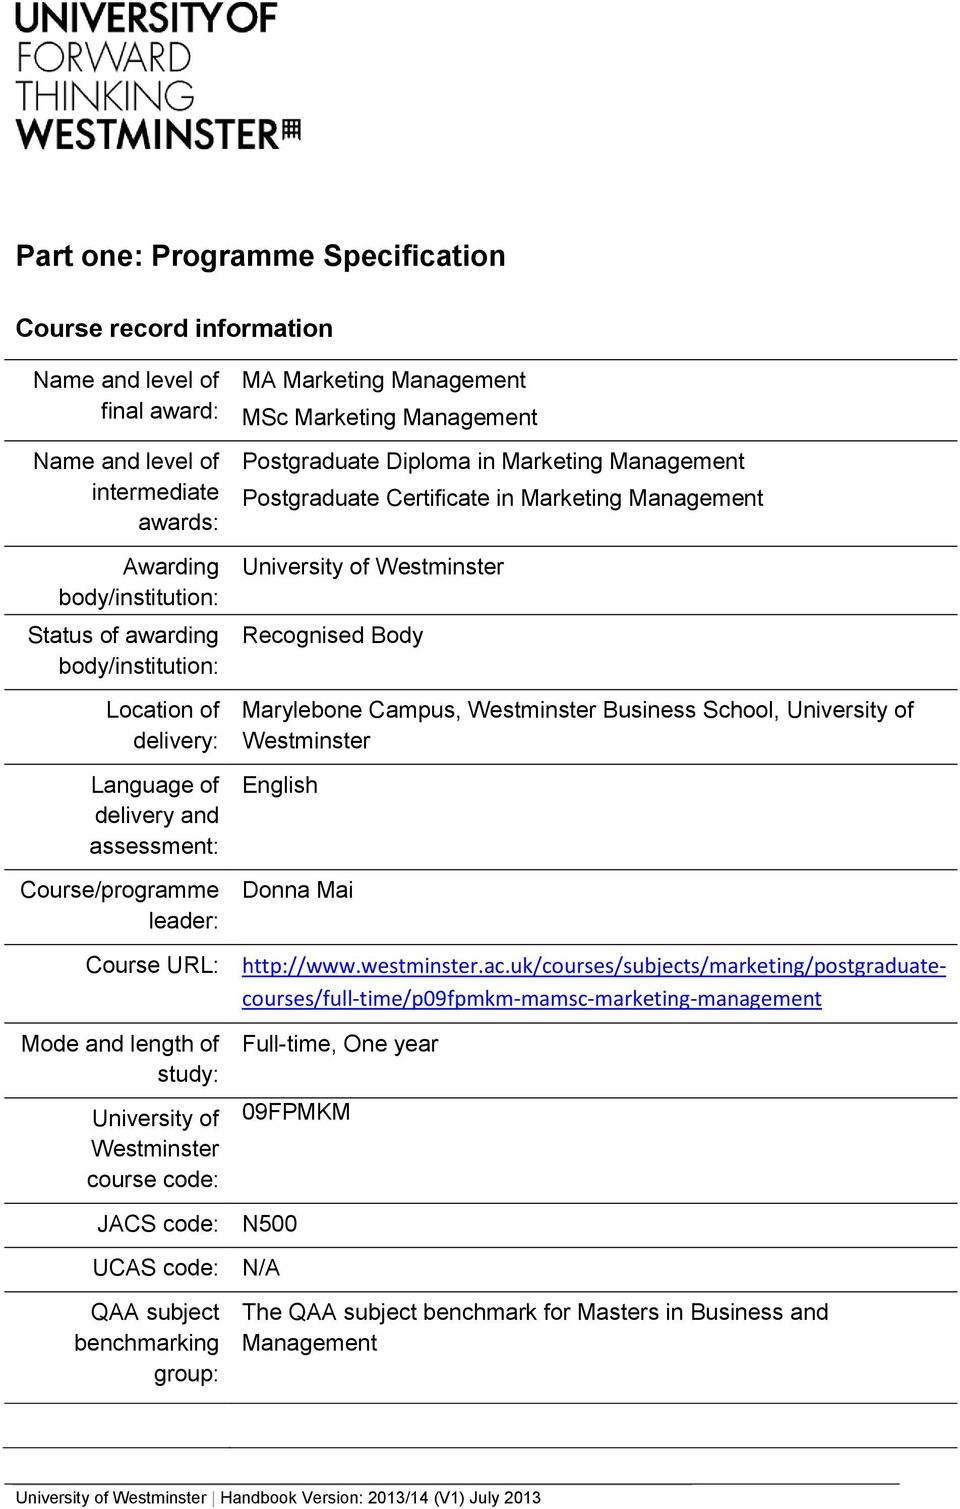 Certificate in Marketing Management University of Westminster Recognised Body Marylebone Campus, Westminster Business School, University of Westminster English Donna Mai Course URL: http://www.